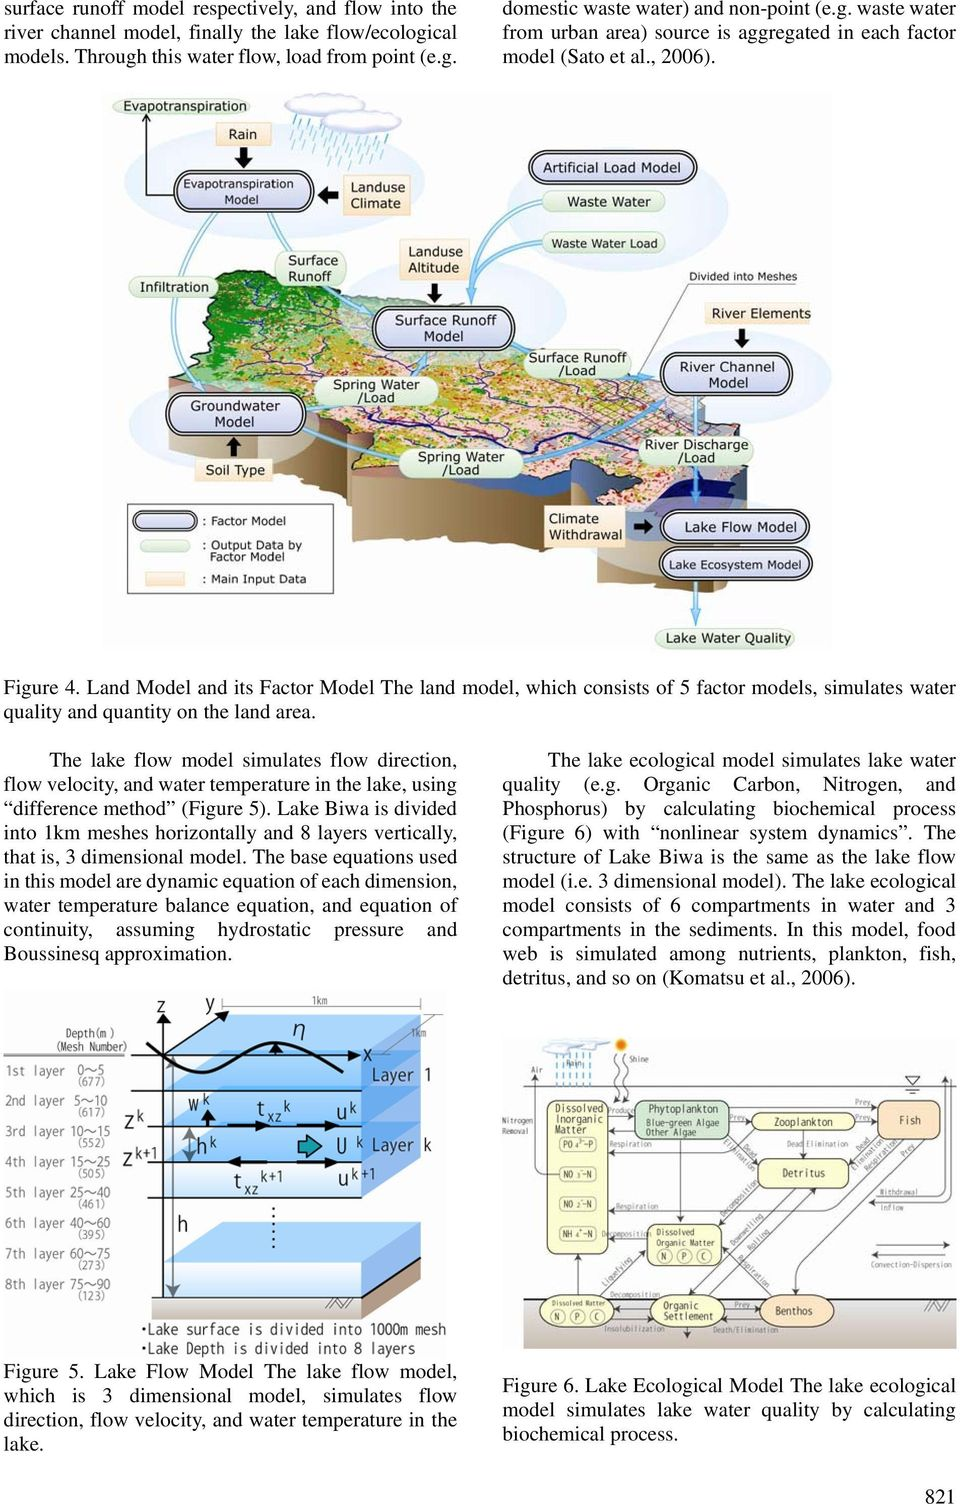 Land Model and its Factor Model The land model, which consists of 5 factor models, simulates water quality and quantity on the land area.